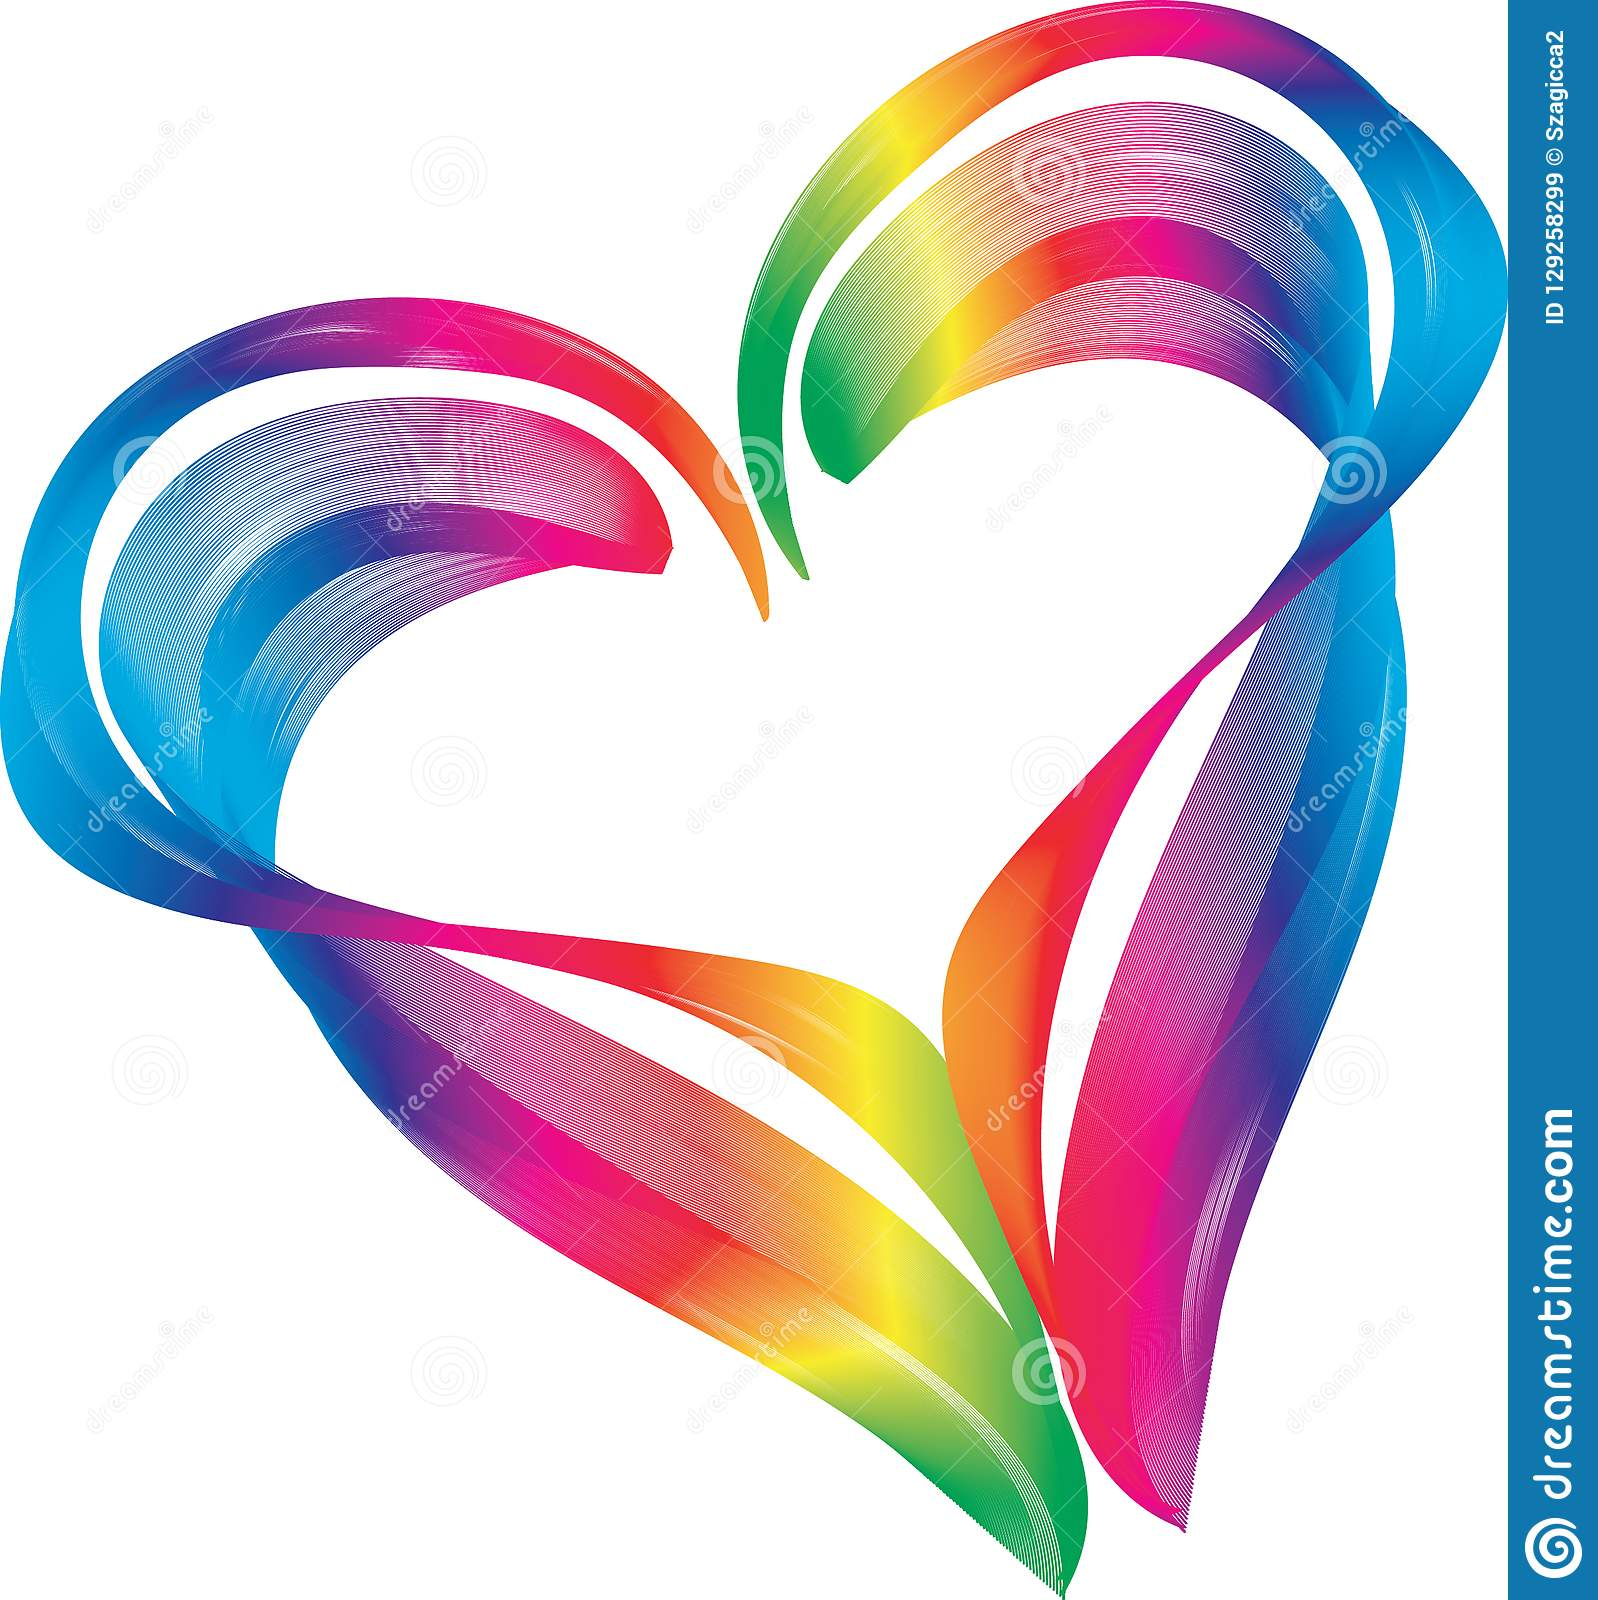 Rainbow color heart shape symbol